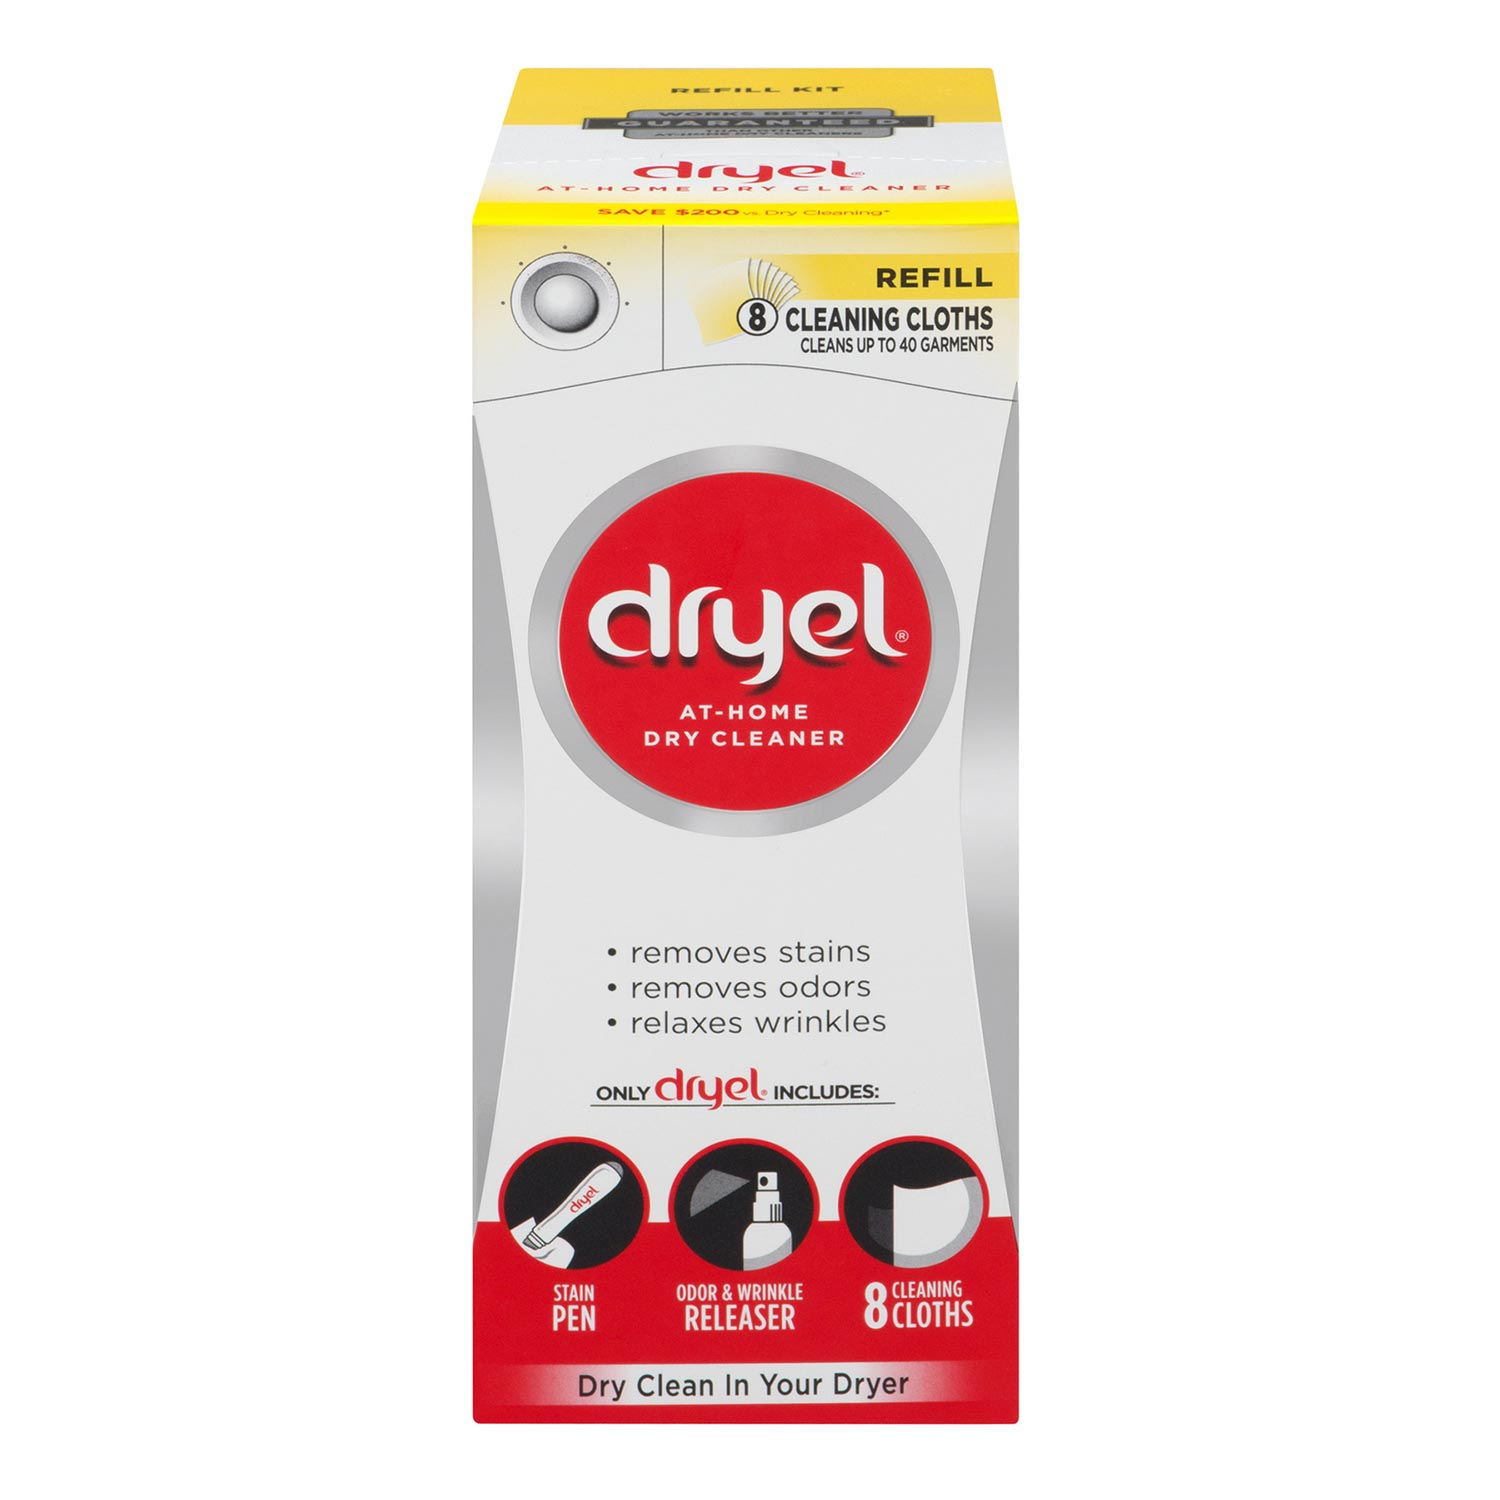 Dryel At-Home Dry Cleaner Refill Kit